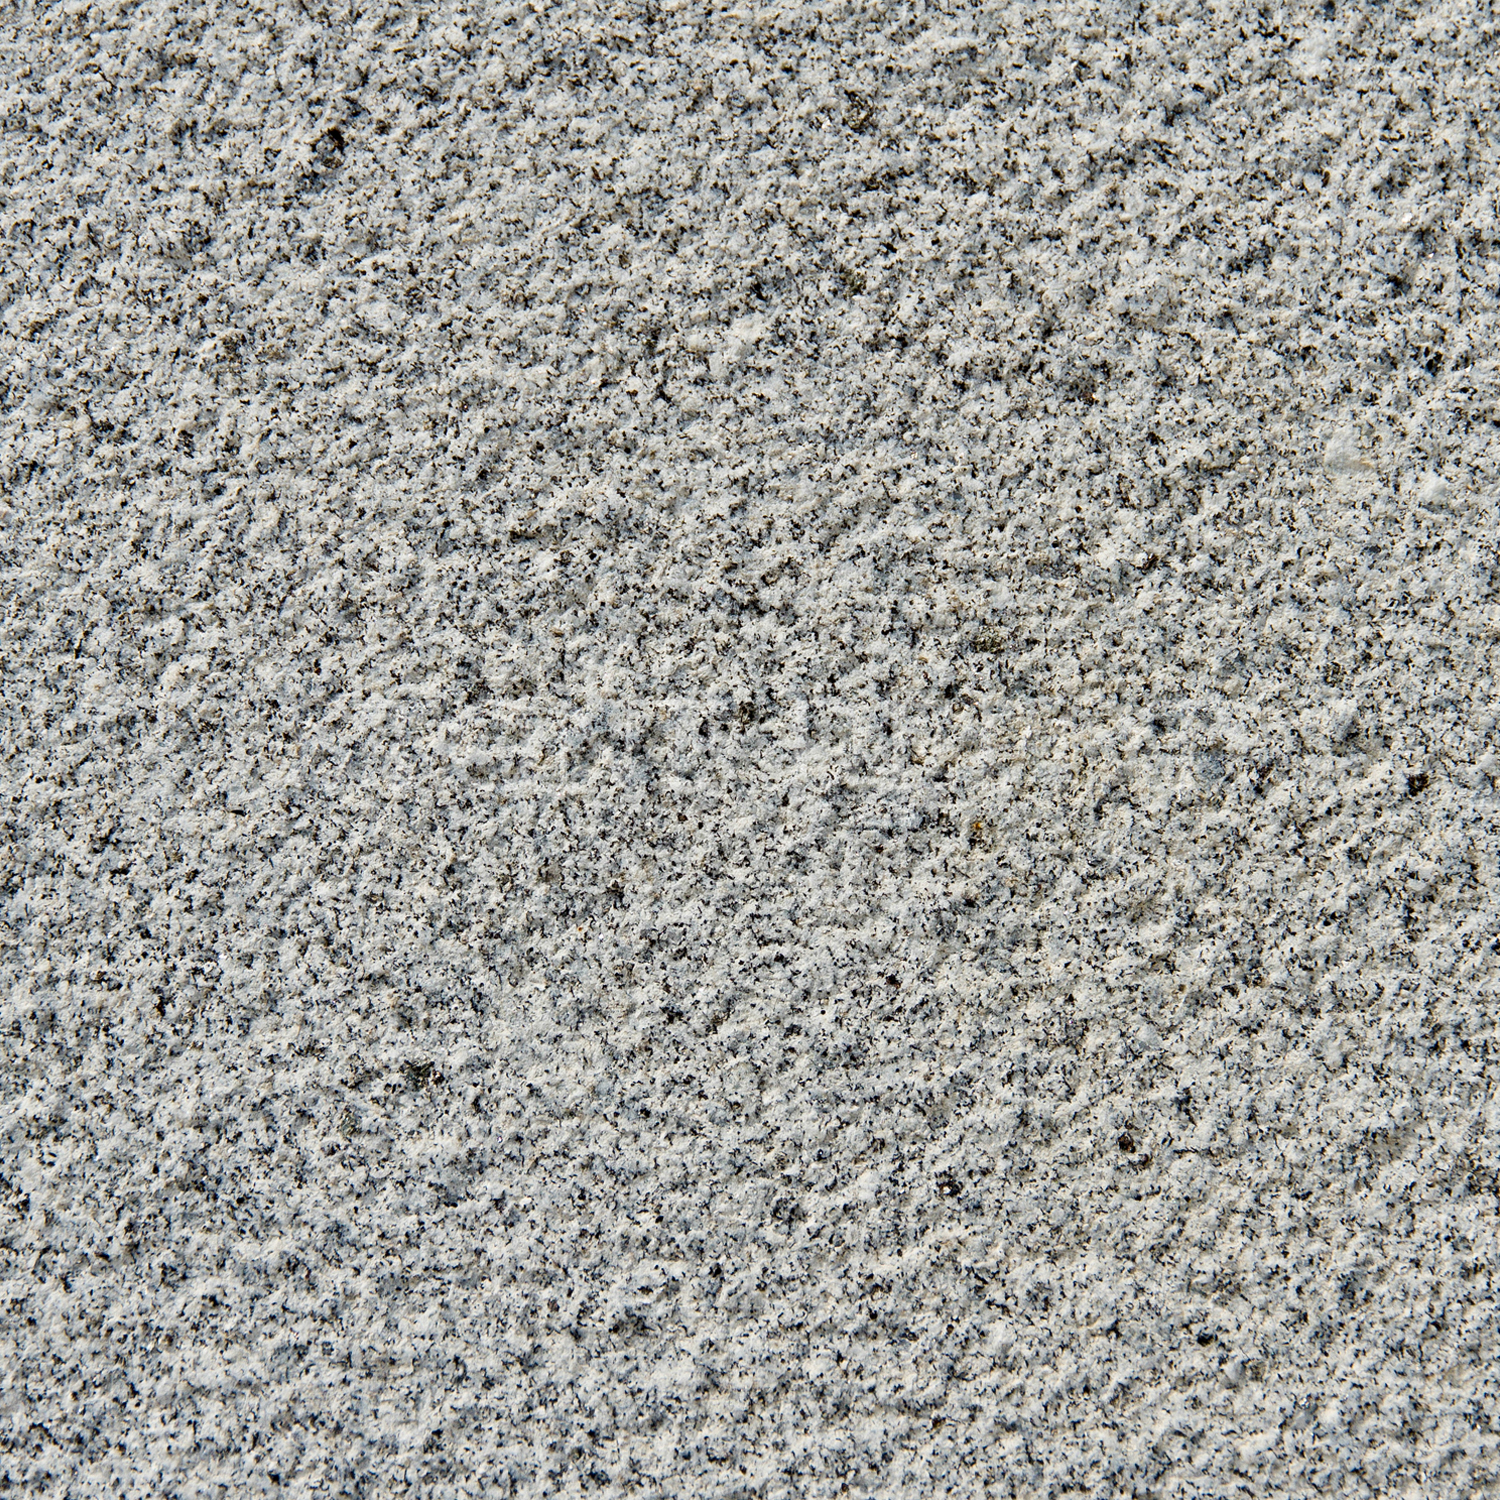 Granite Surface : Surface Finishing by STONE DEPOT, Supplier of Granite, Marble, and ...